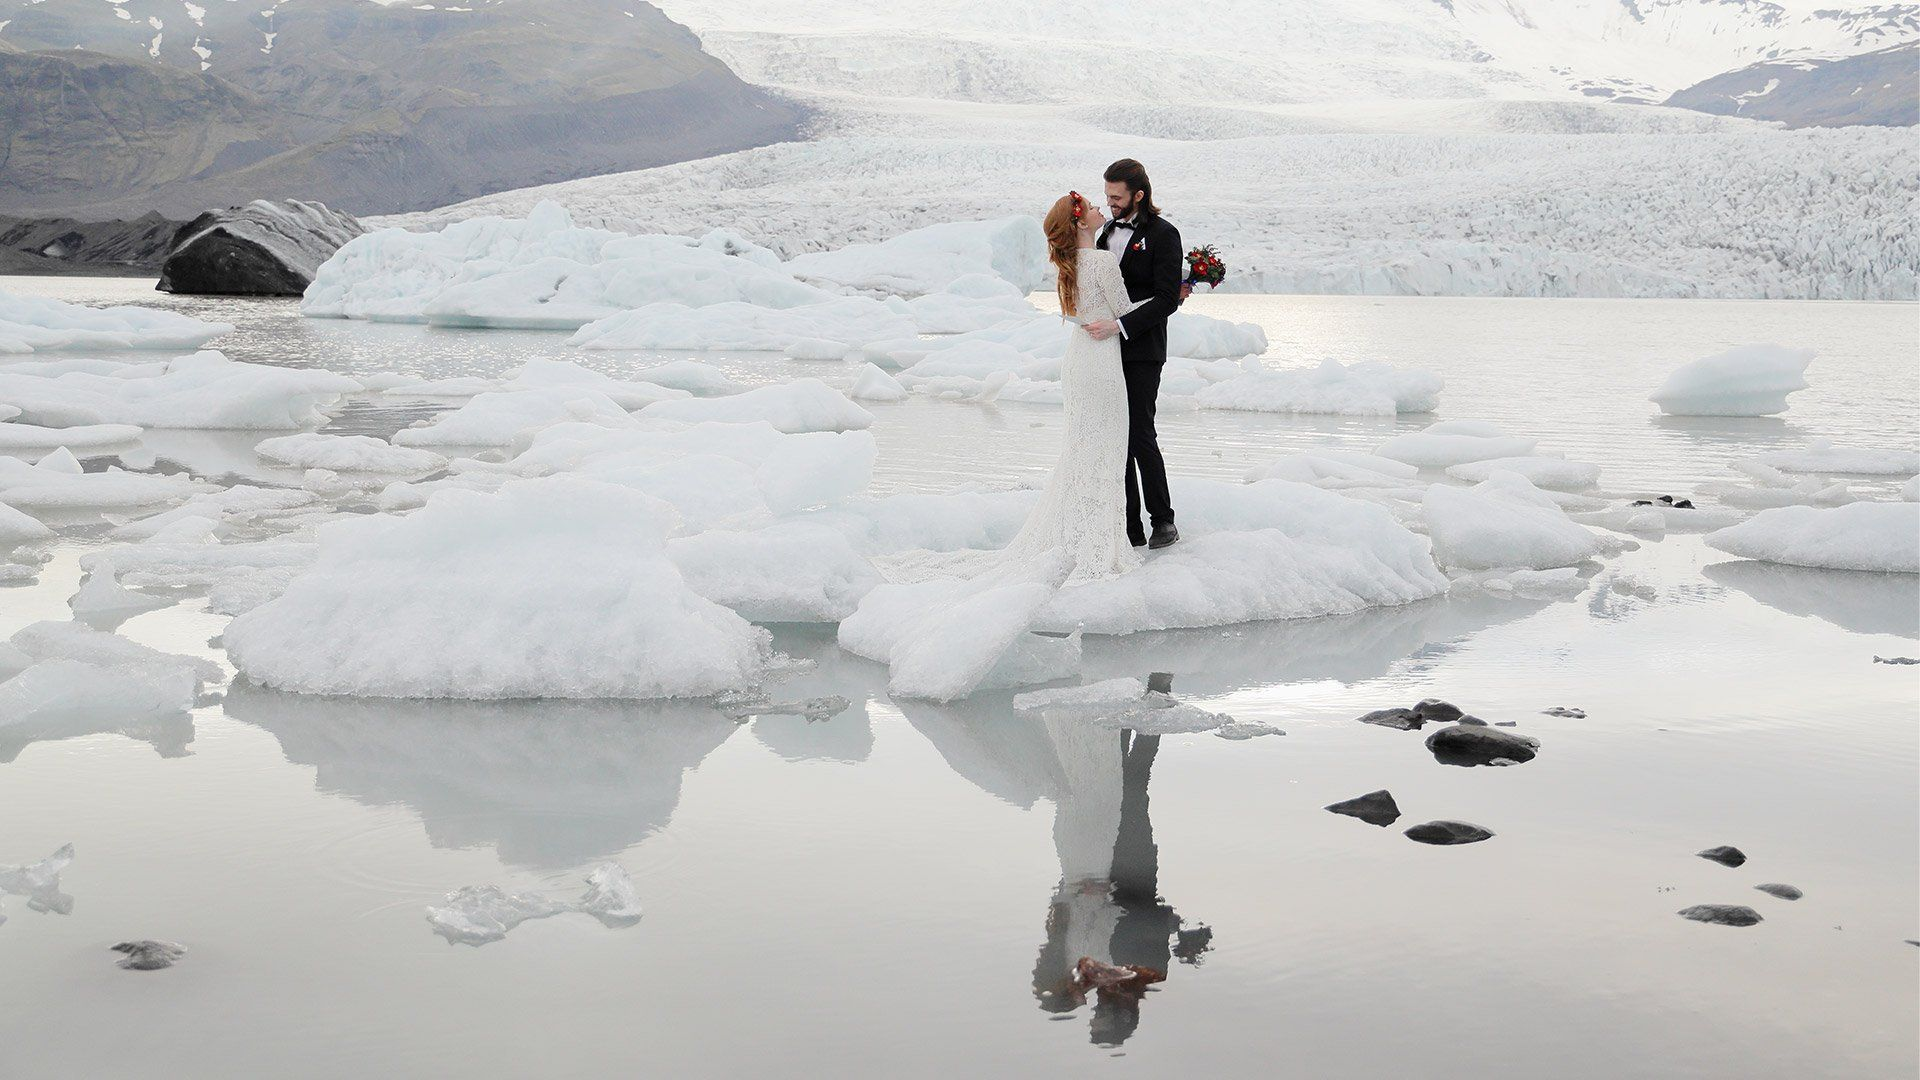 Eloped couple during ceremony on ice in Iceland shot on Canon EOS R & RF 24-105mm f/4L IS USM